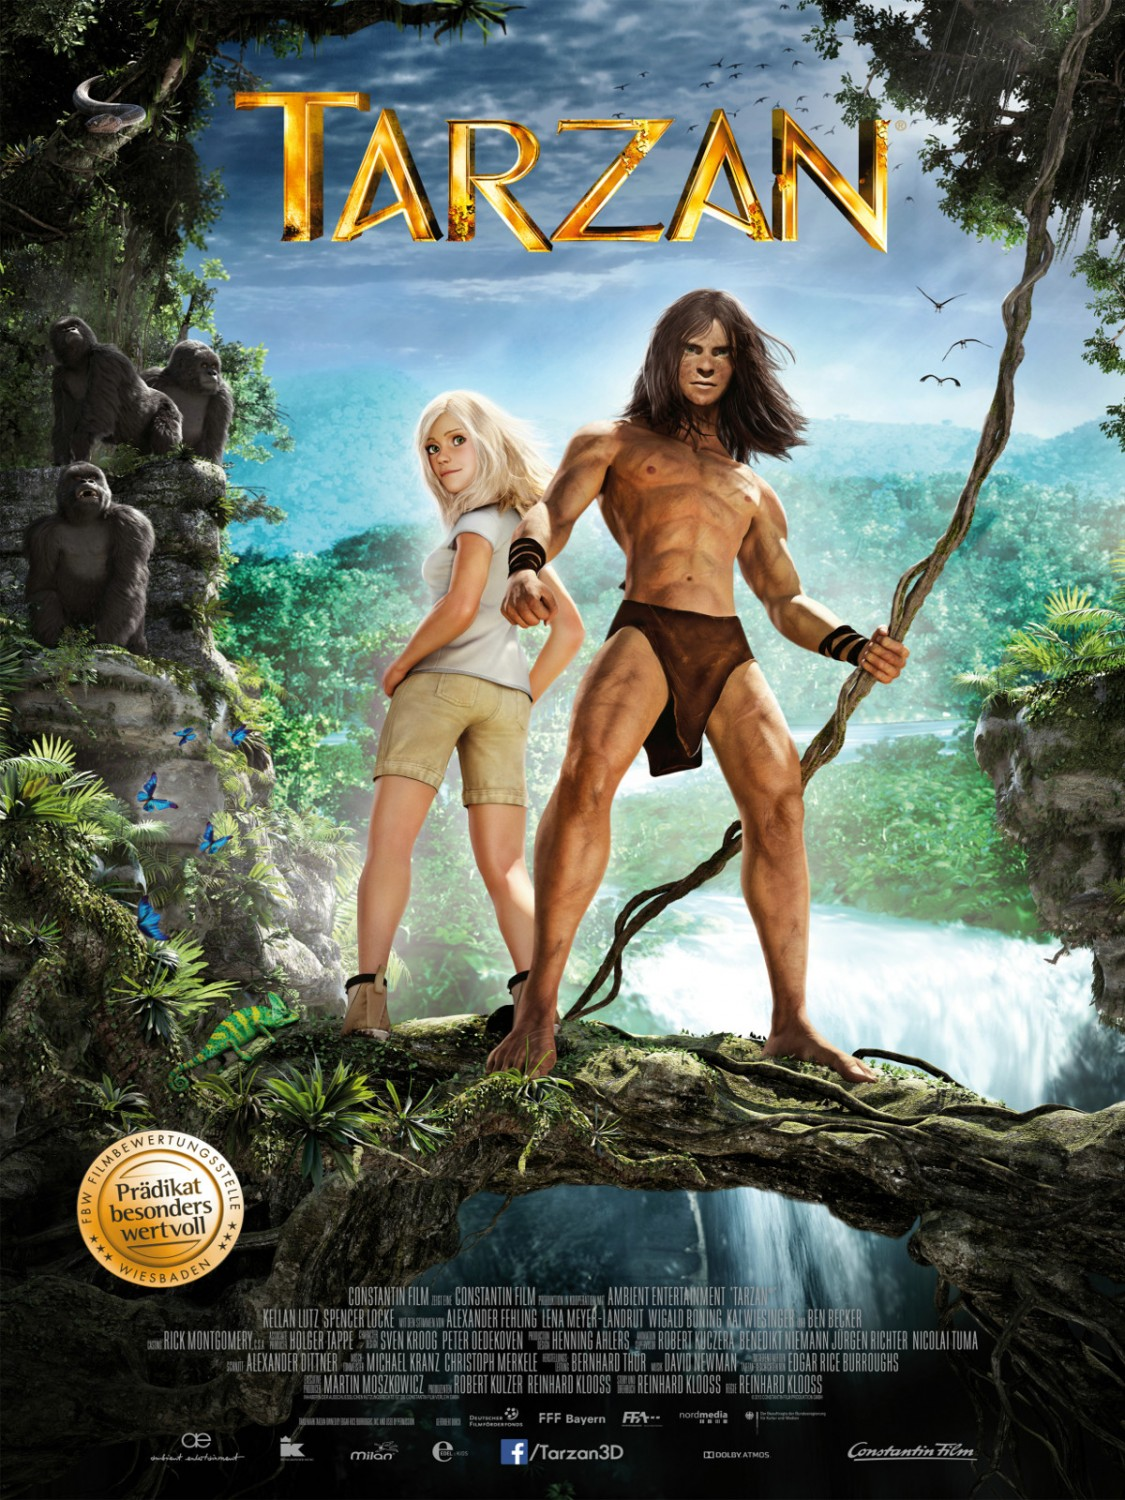 TARZAN-Official Poster Banner PROMO POSTER XLG-26DEZEMBRO2013